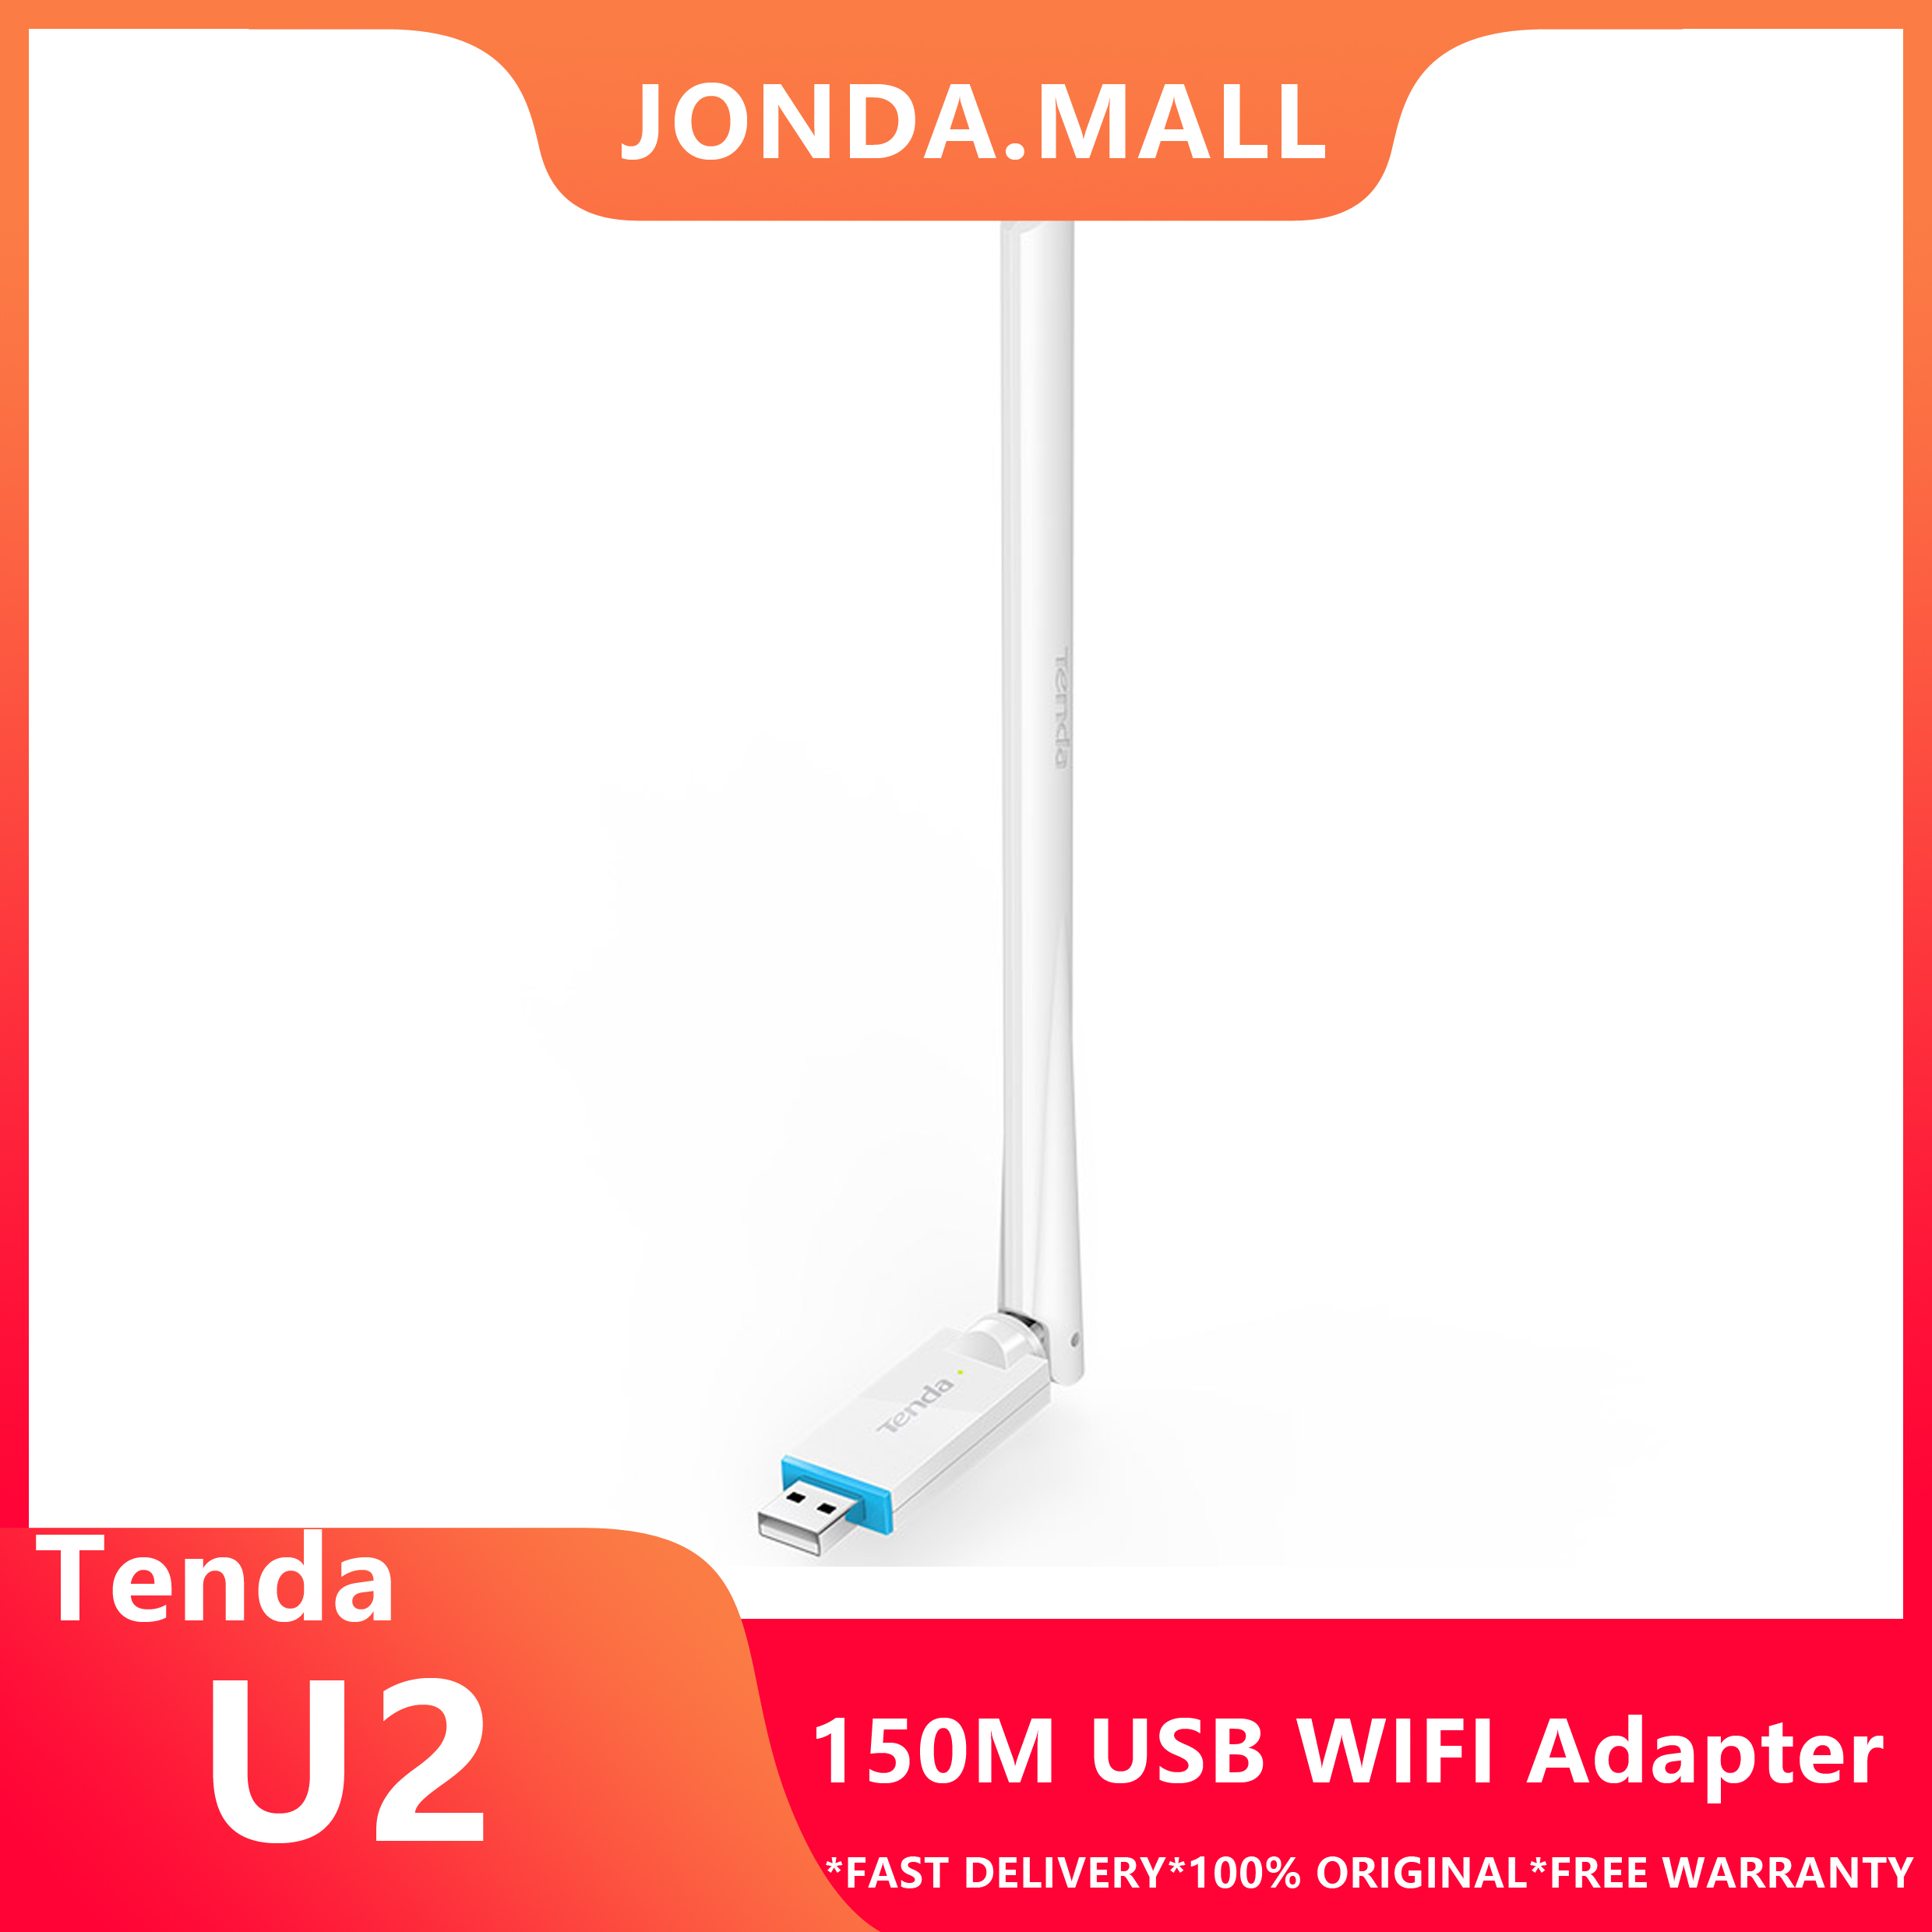 Tenda U2 Adapter N150 High Gain Wireless USB Adapte USB Network Card 150Mbps,Plug-and-Play, 6dBi External Antenna